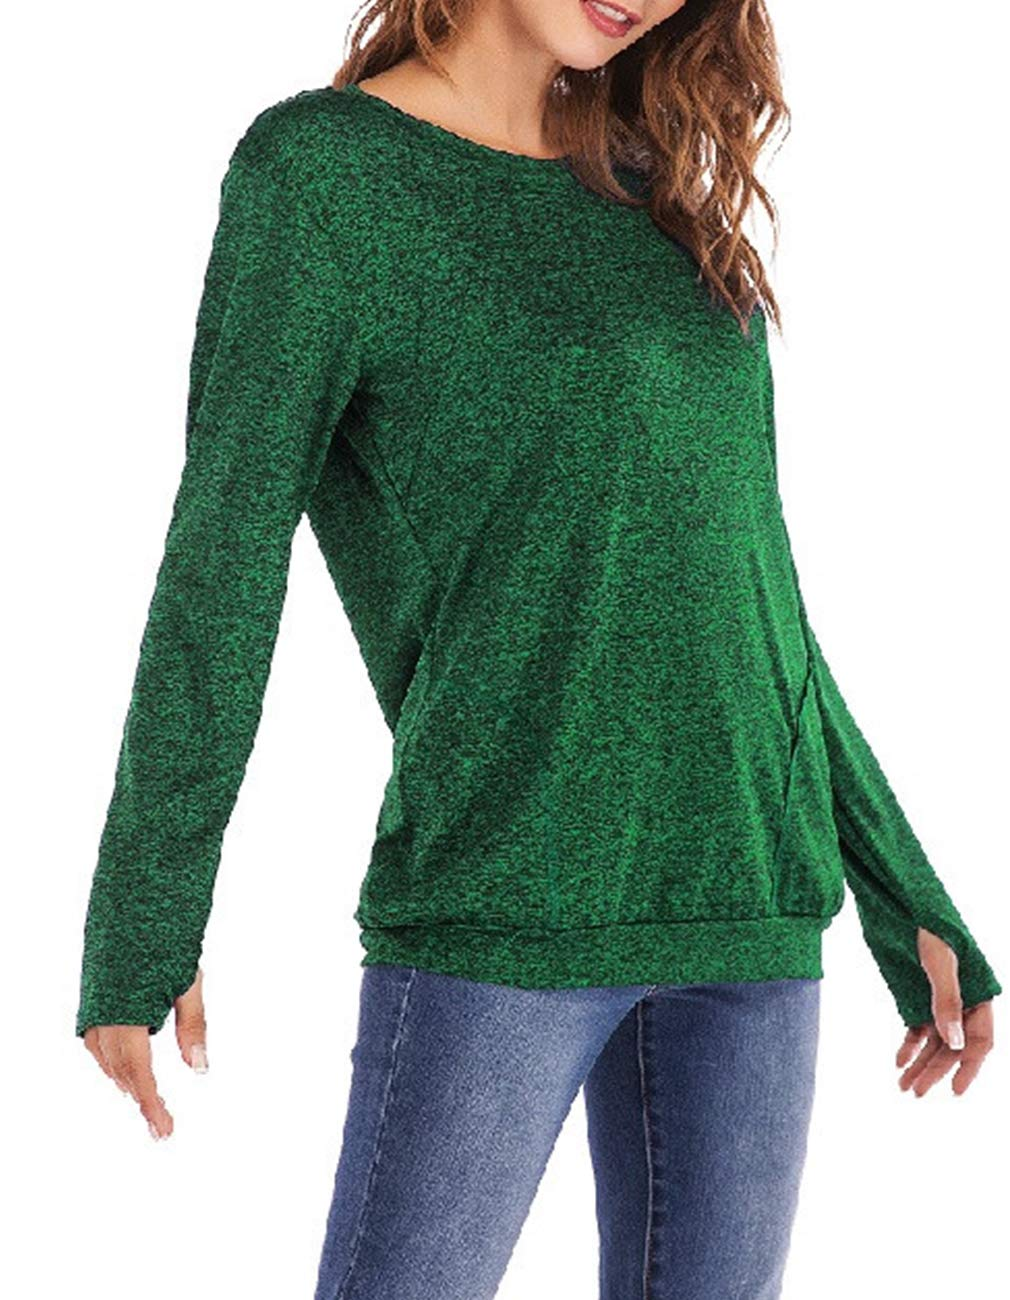 Defal Womens Long Sleeve Round Neck Quick-Dry Top T-Shirts Loose Gym Sports with Thumb Holes Pockets Fashion Tunic Blouse (Green,XXXL) by Defal (Image #2)